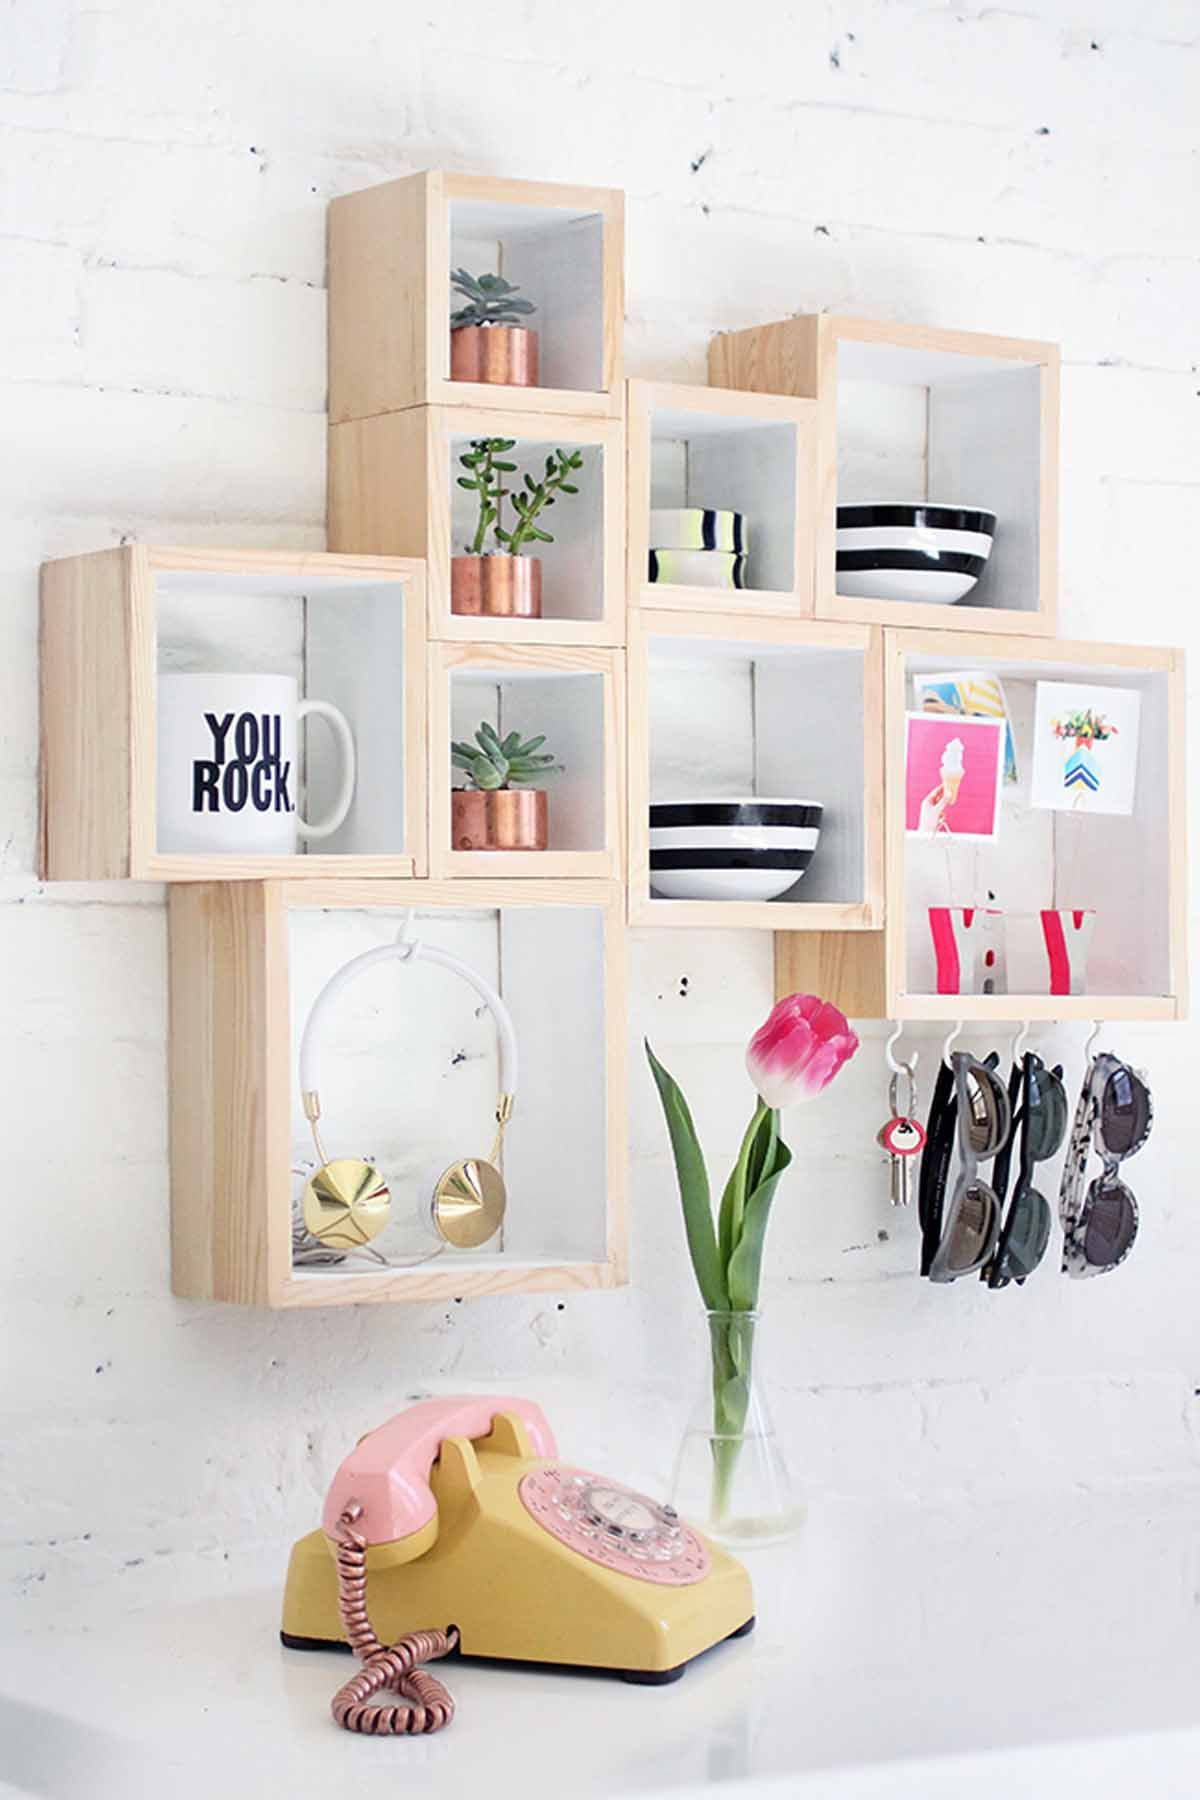 How to Organize Your Room - 20 Best Bedroom Organization Ideas